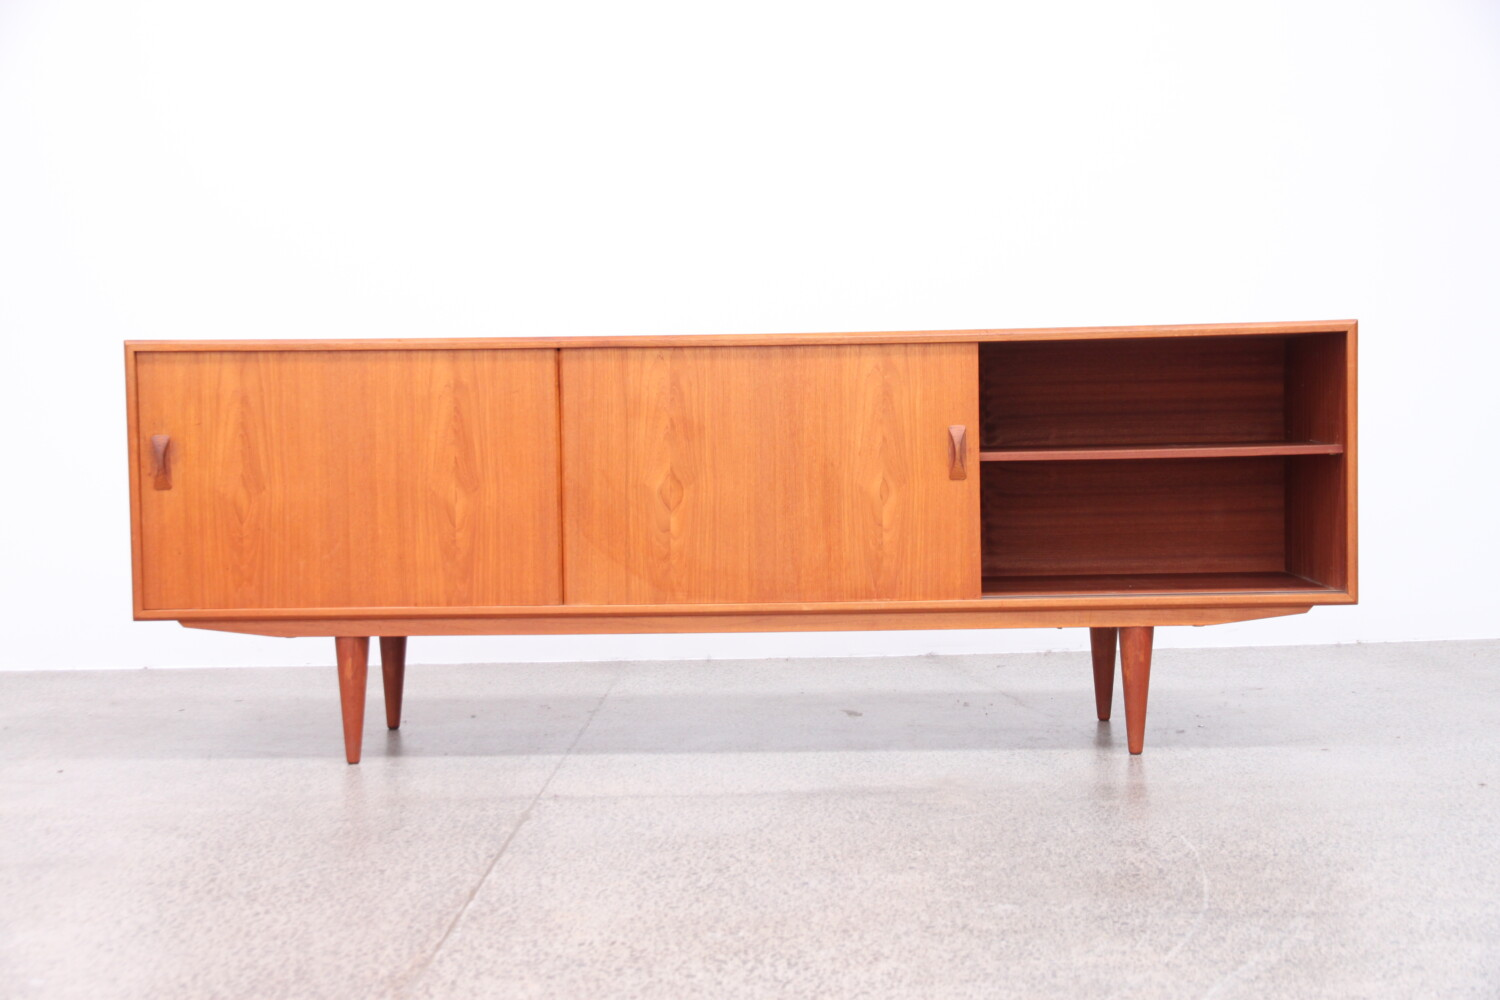 Clausen & Son Sideboard sold